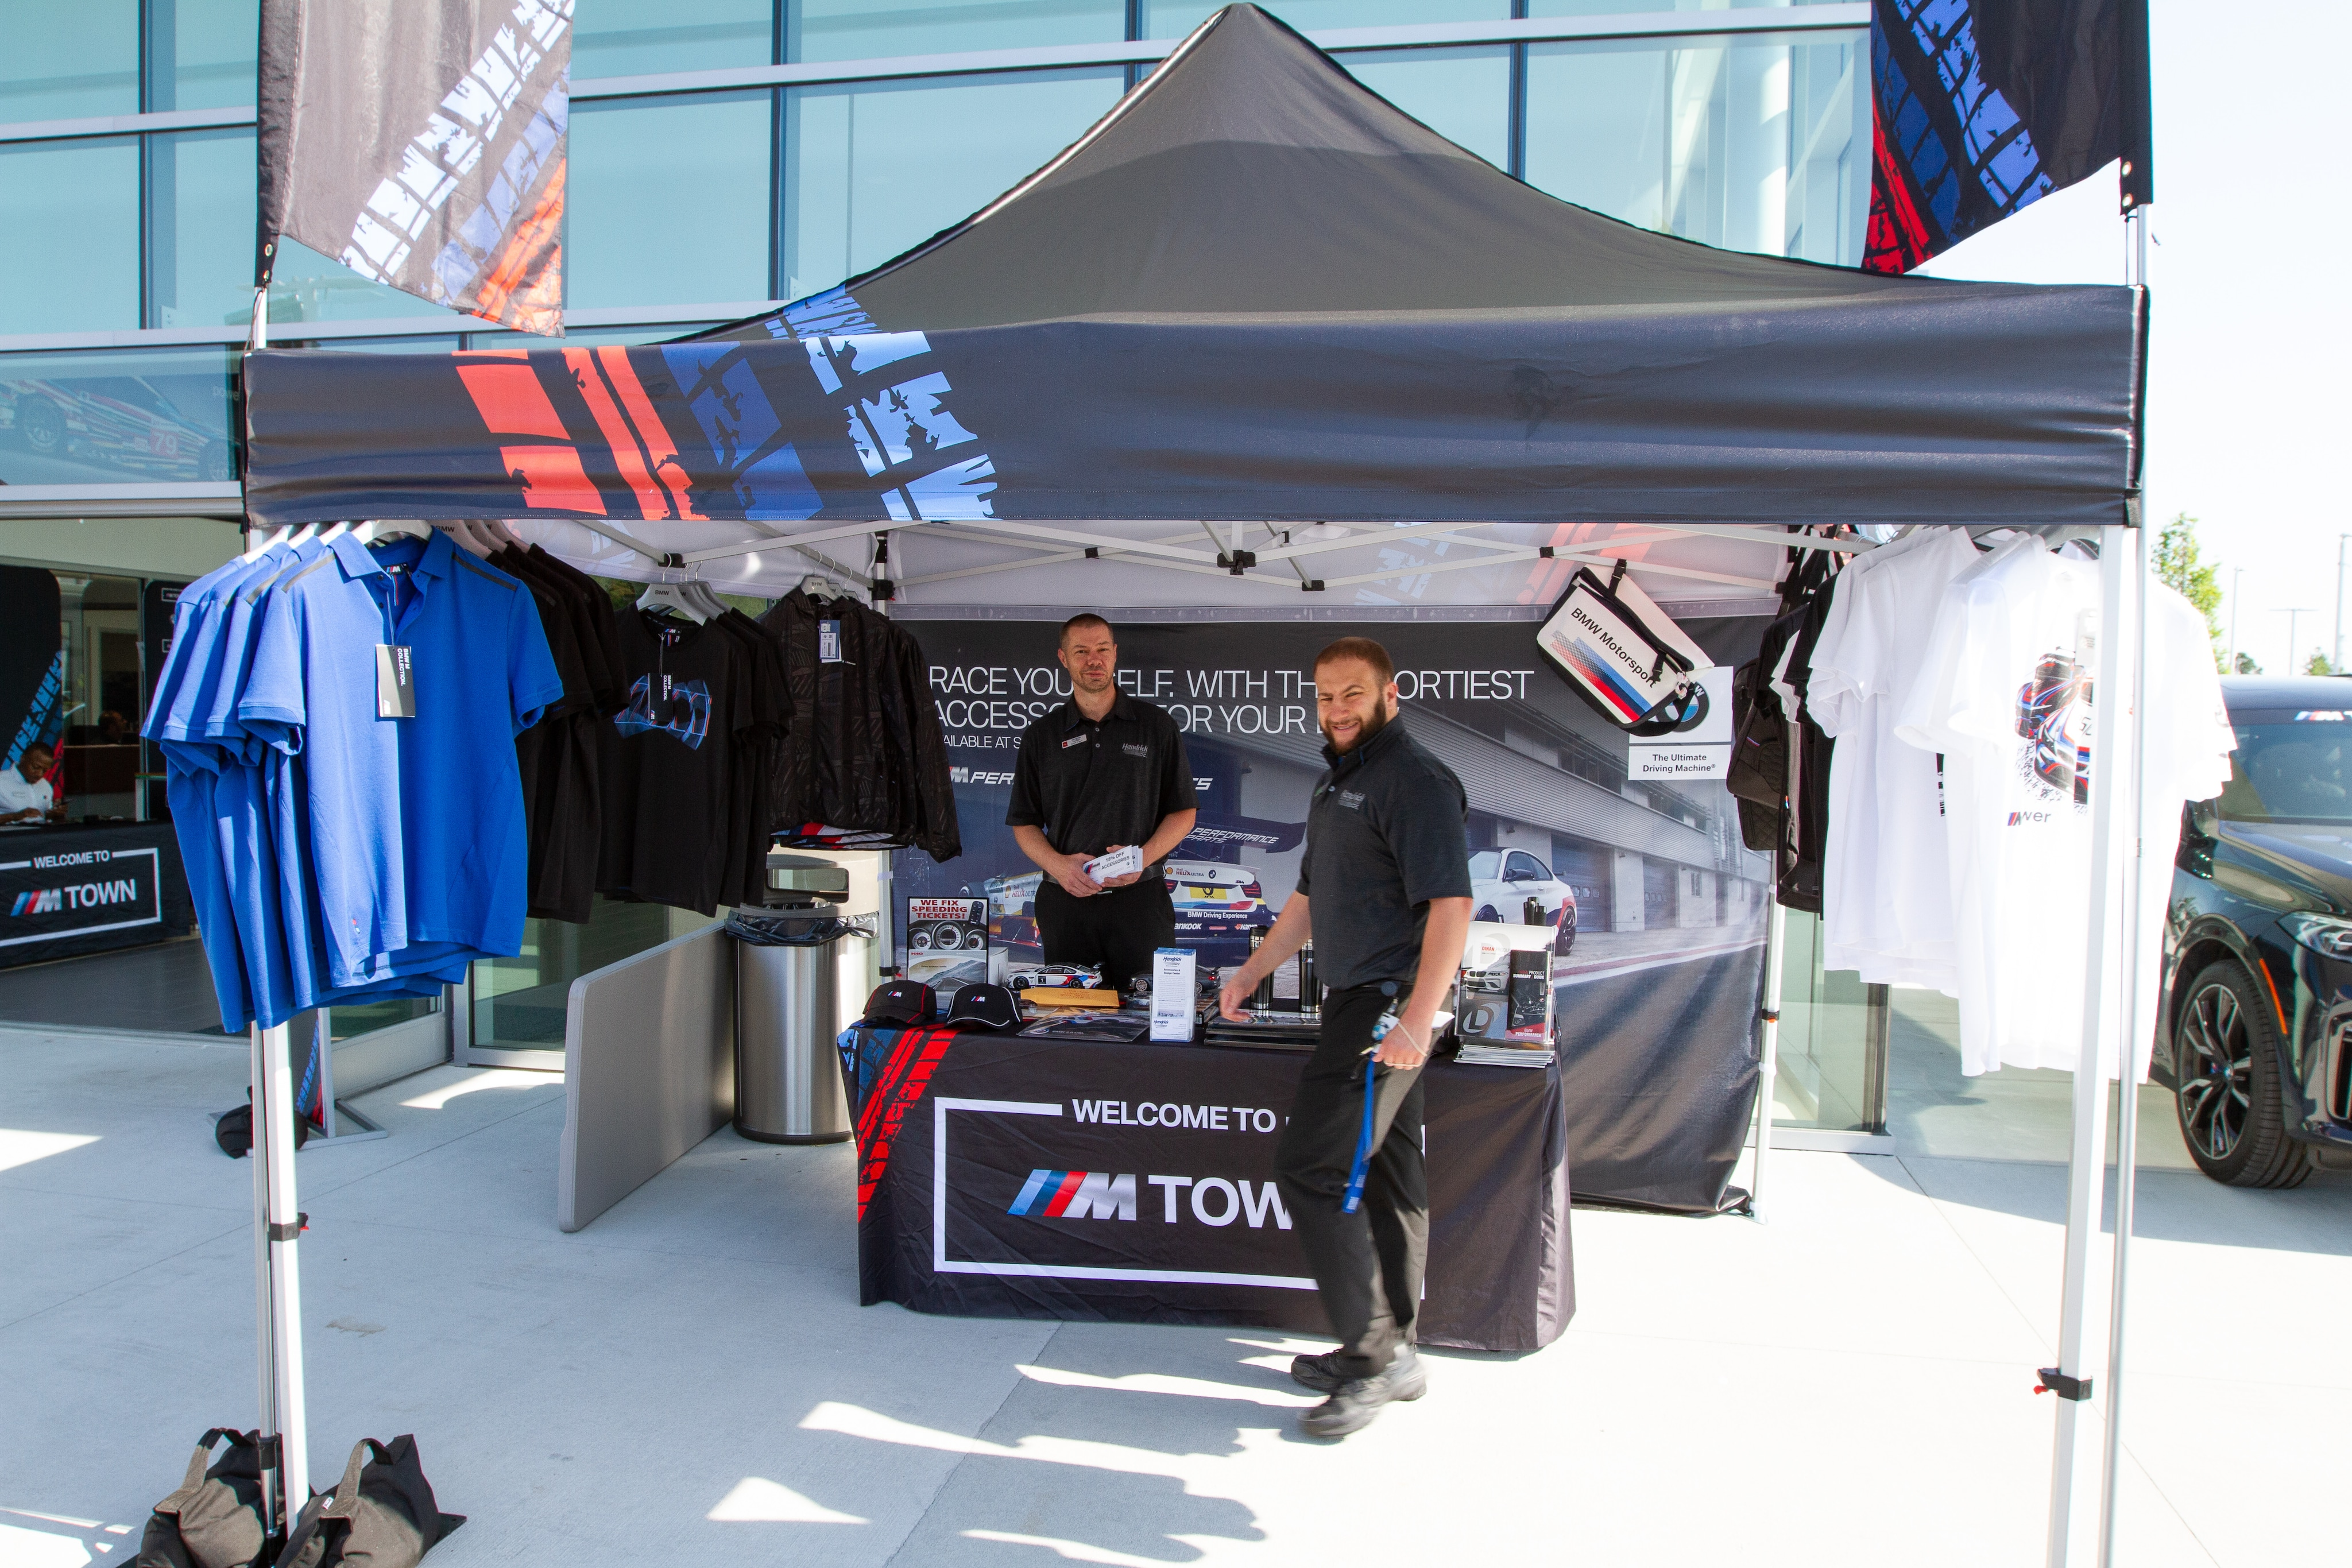 Assistant Parts Manager Keith Alger and Accessories Specialist Drew Levat showcase M Performance parts and gear at M Town Tour tent.